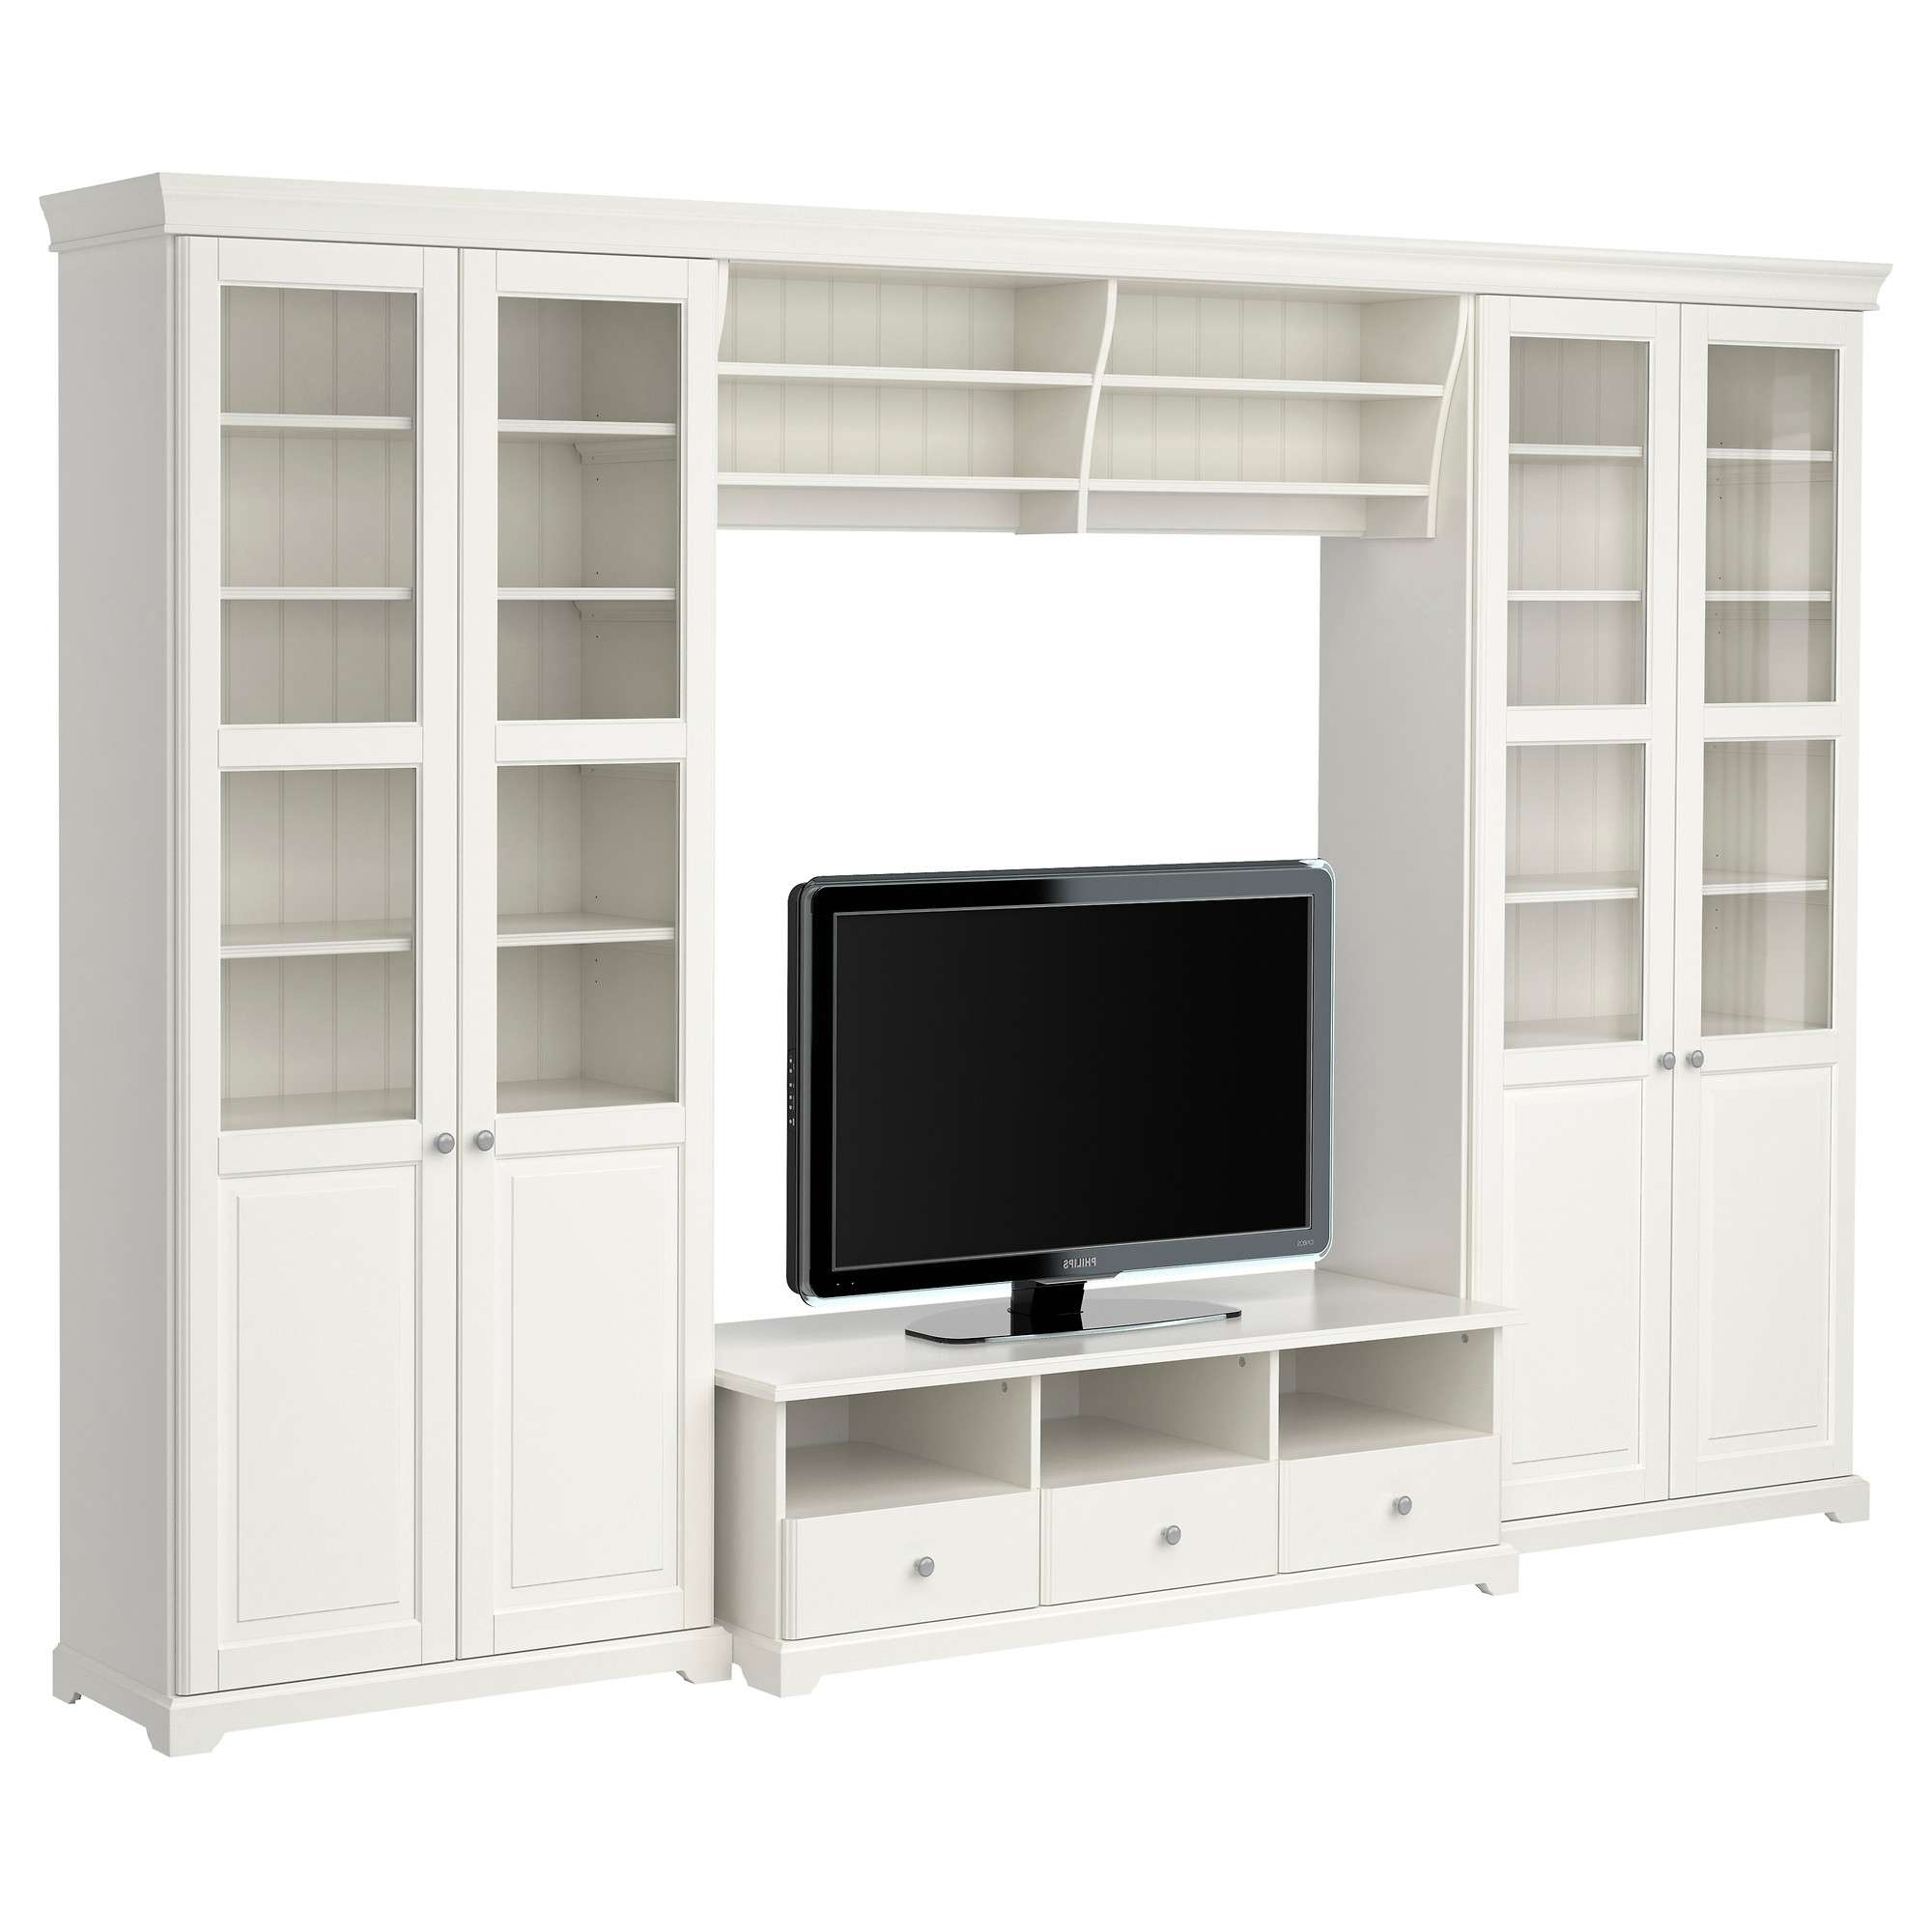 Tv Stands & Tv Units | Ikea Intended For Tv Cabinets With Storage (View 18 of 20)